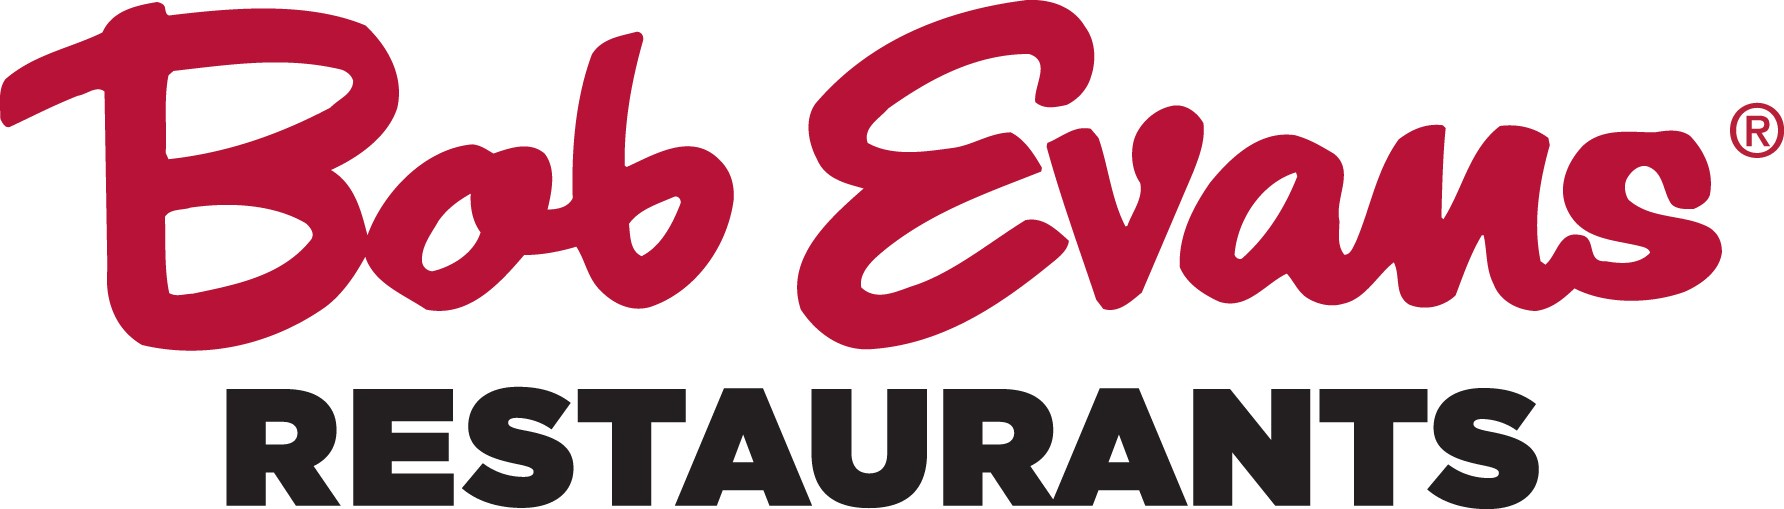 restaurants and caterers in orlando fl